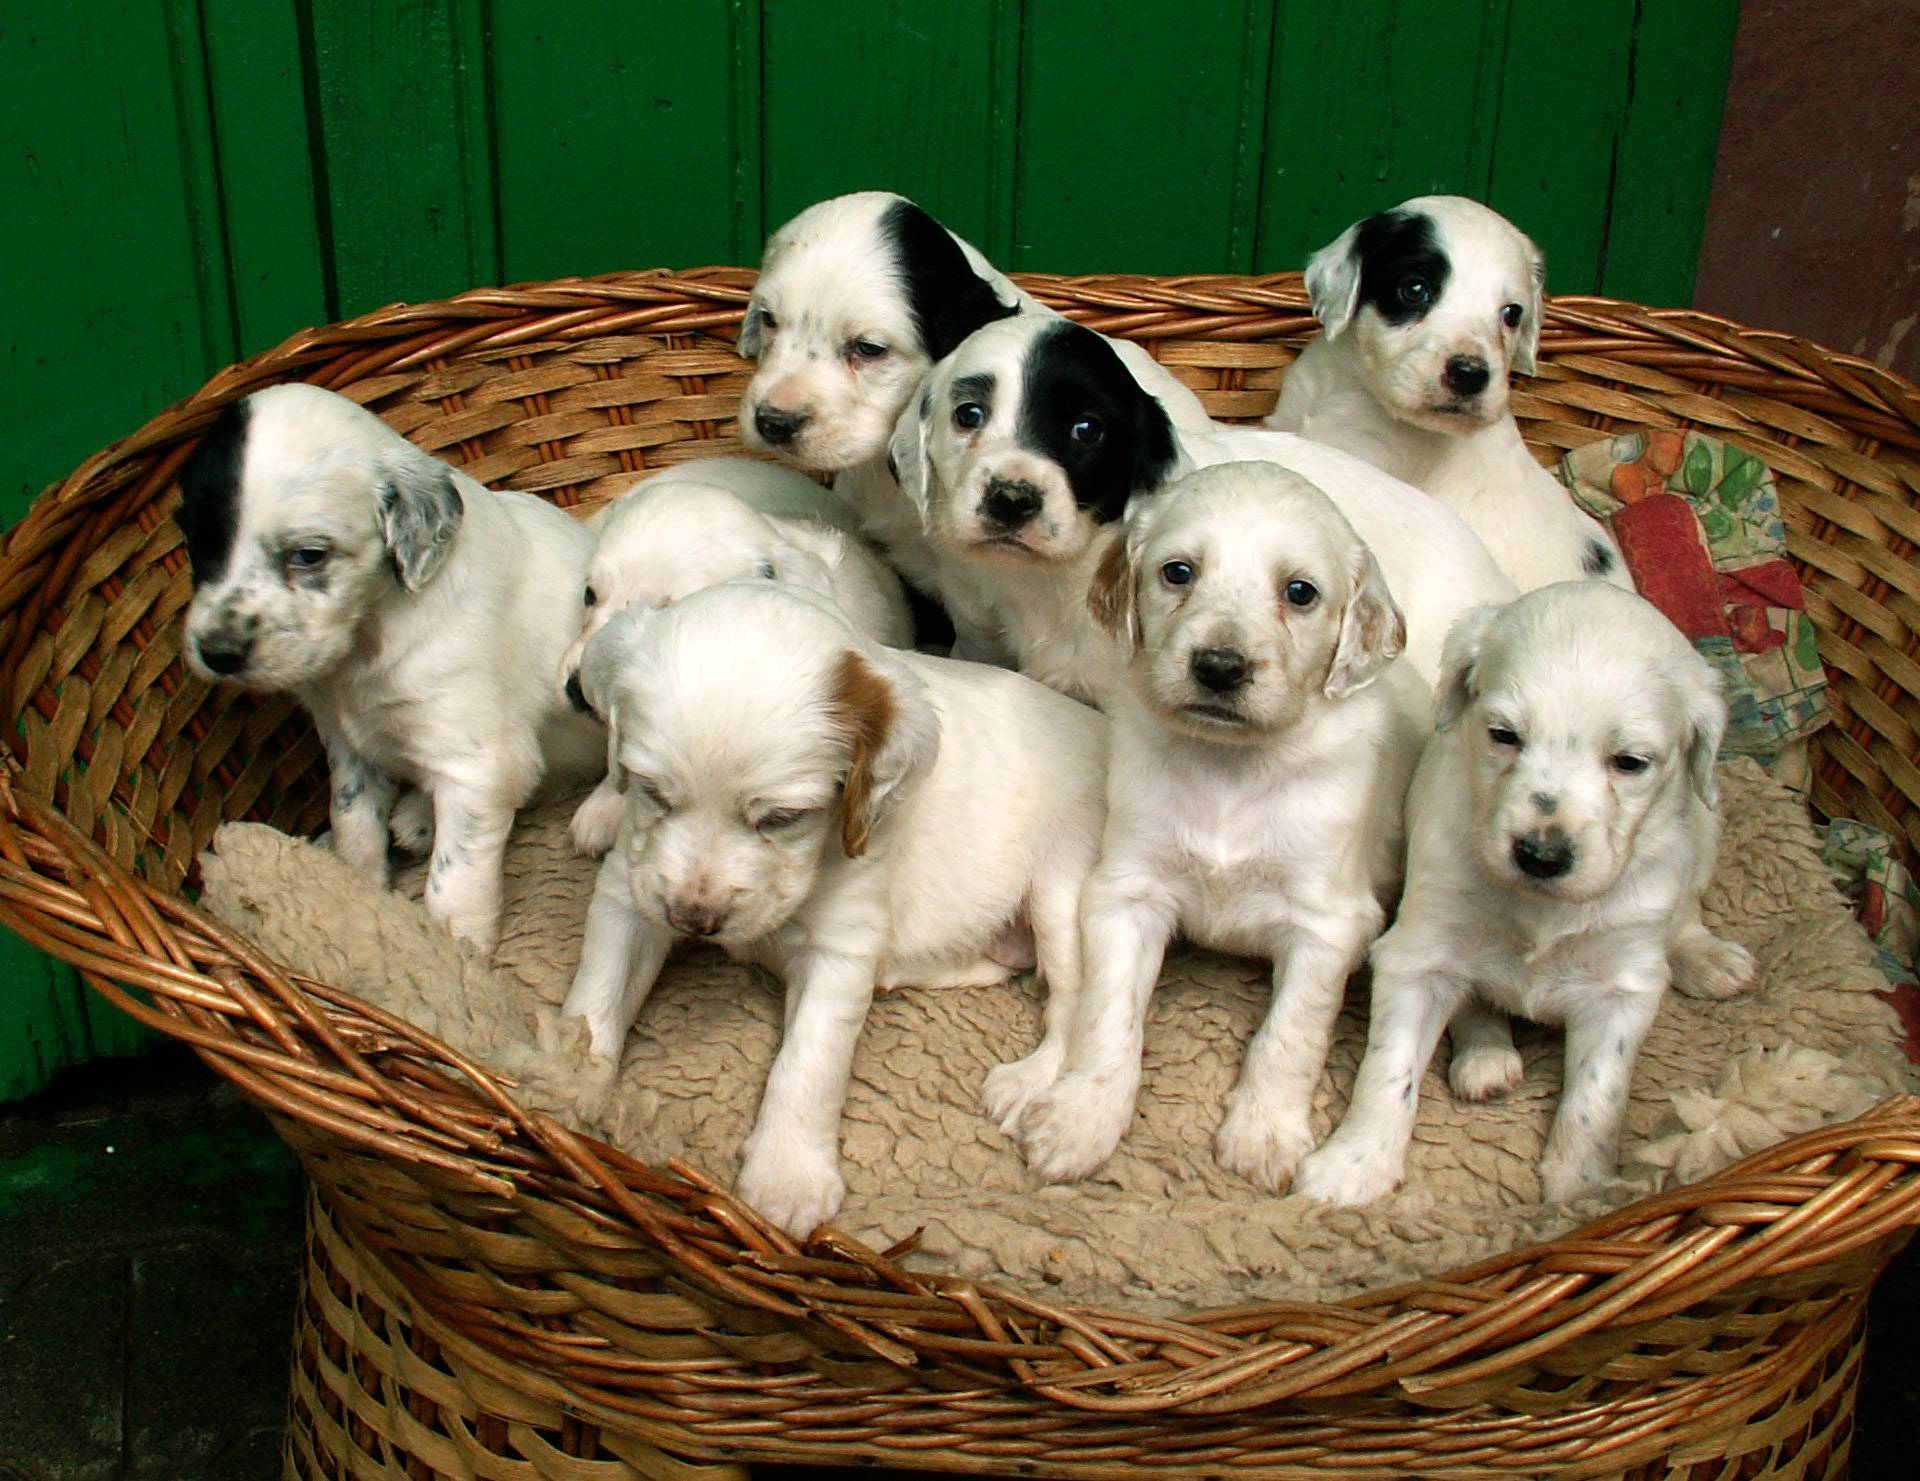 English Setter puppies in the basket wallpaper